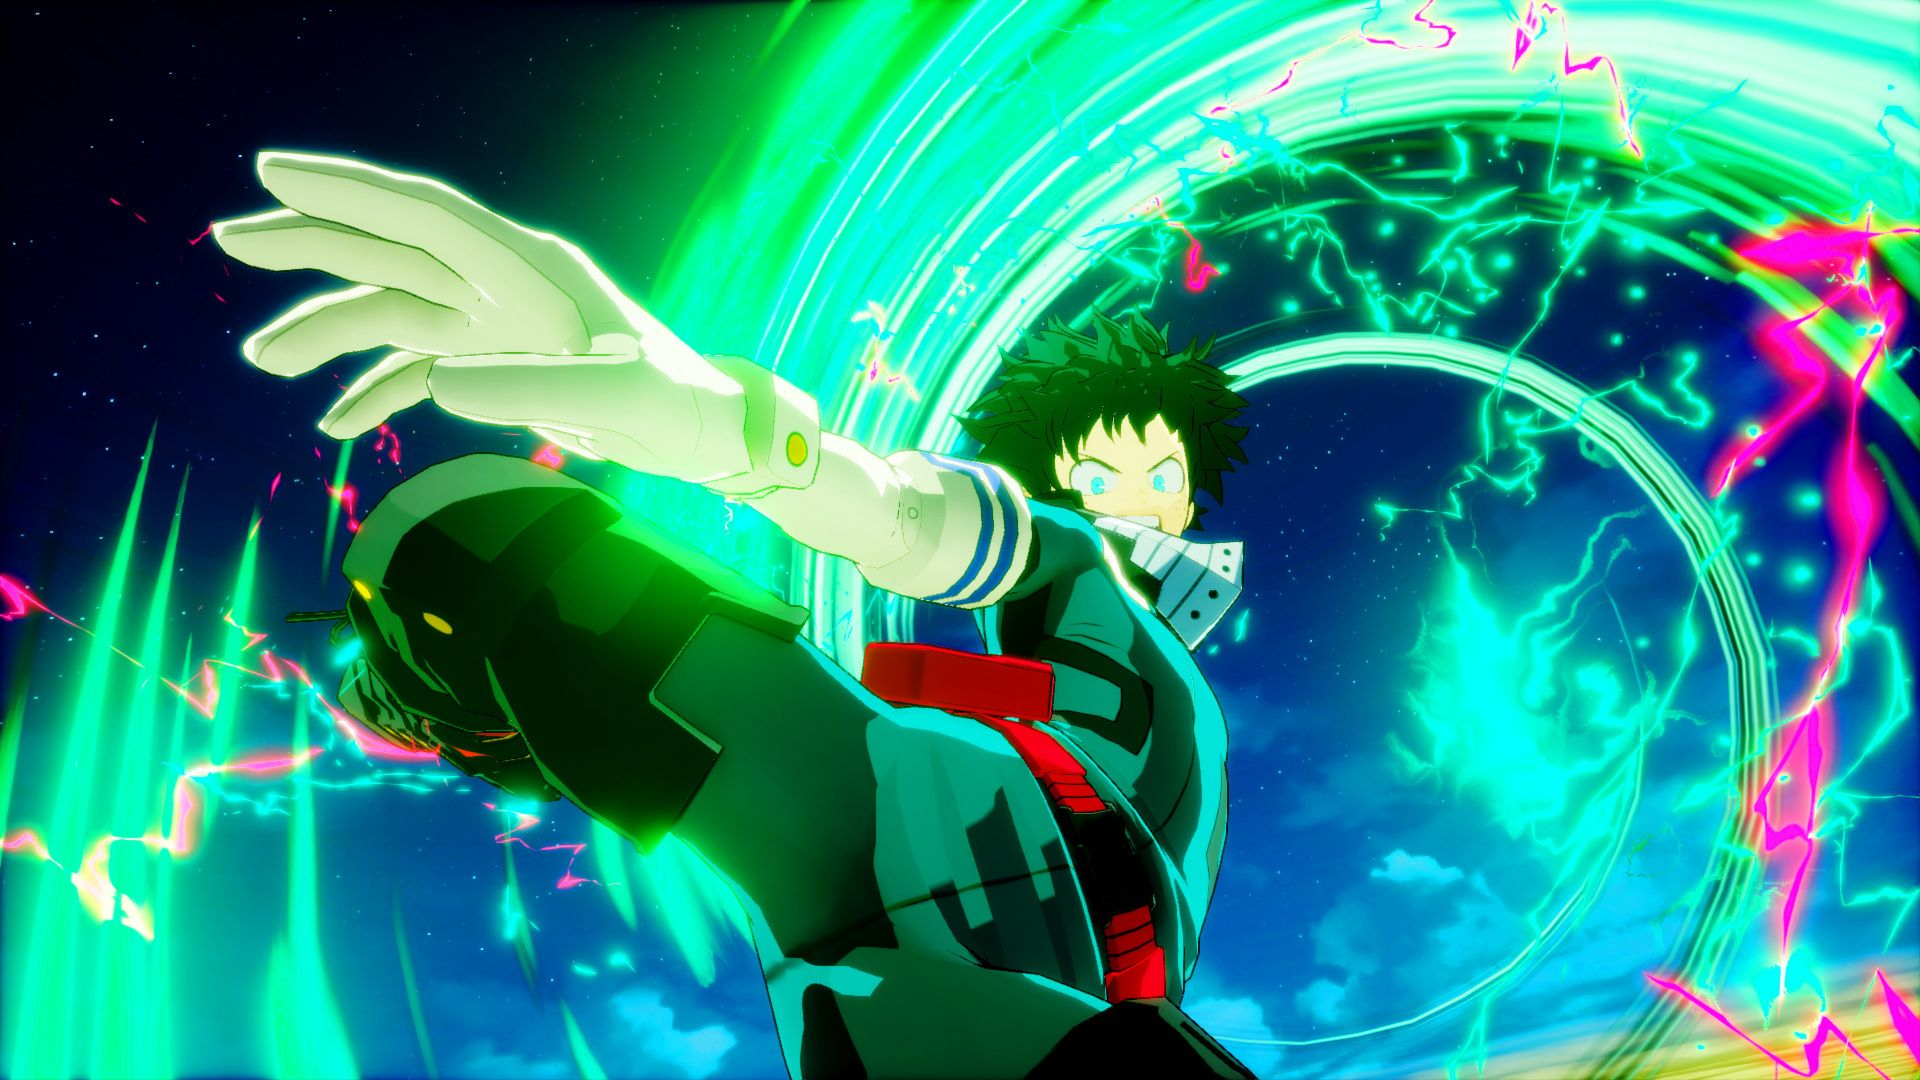 Kick villains into touch with Deku's new fighting style